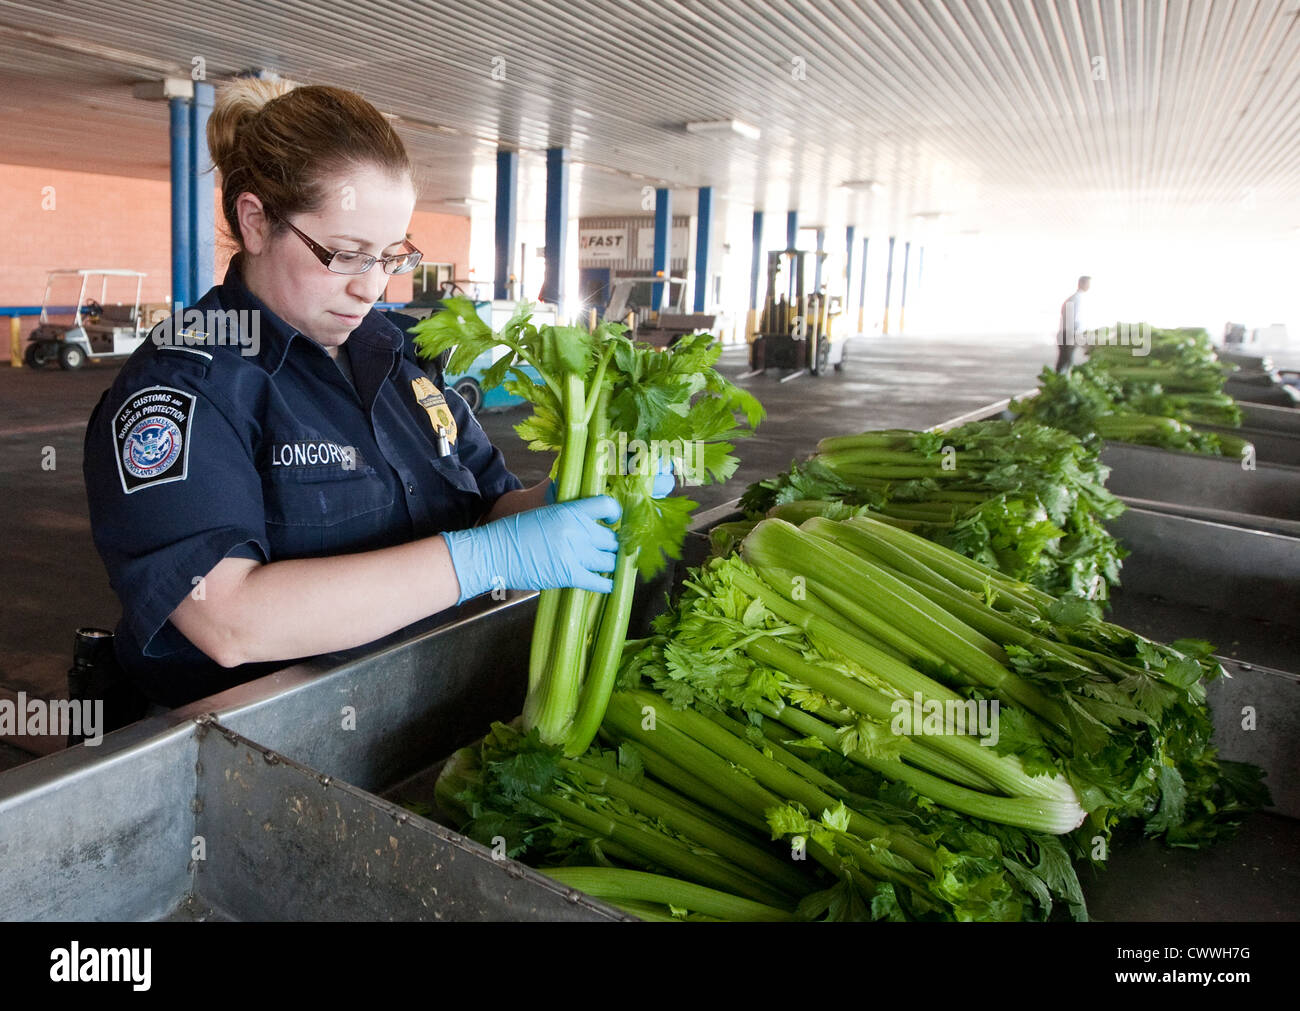 Female agriculture specialists for U.S Customs and Border Protection, inspect boxes of celery coming in from Mexico - Stock Image